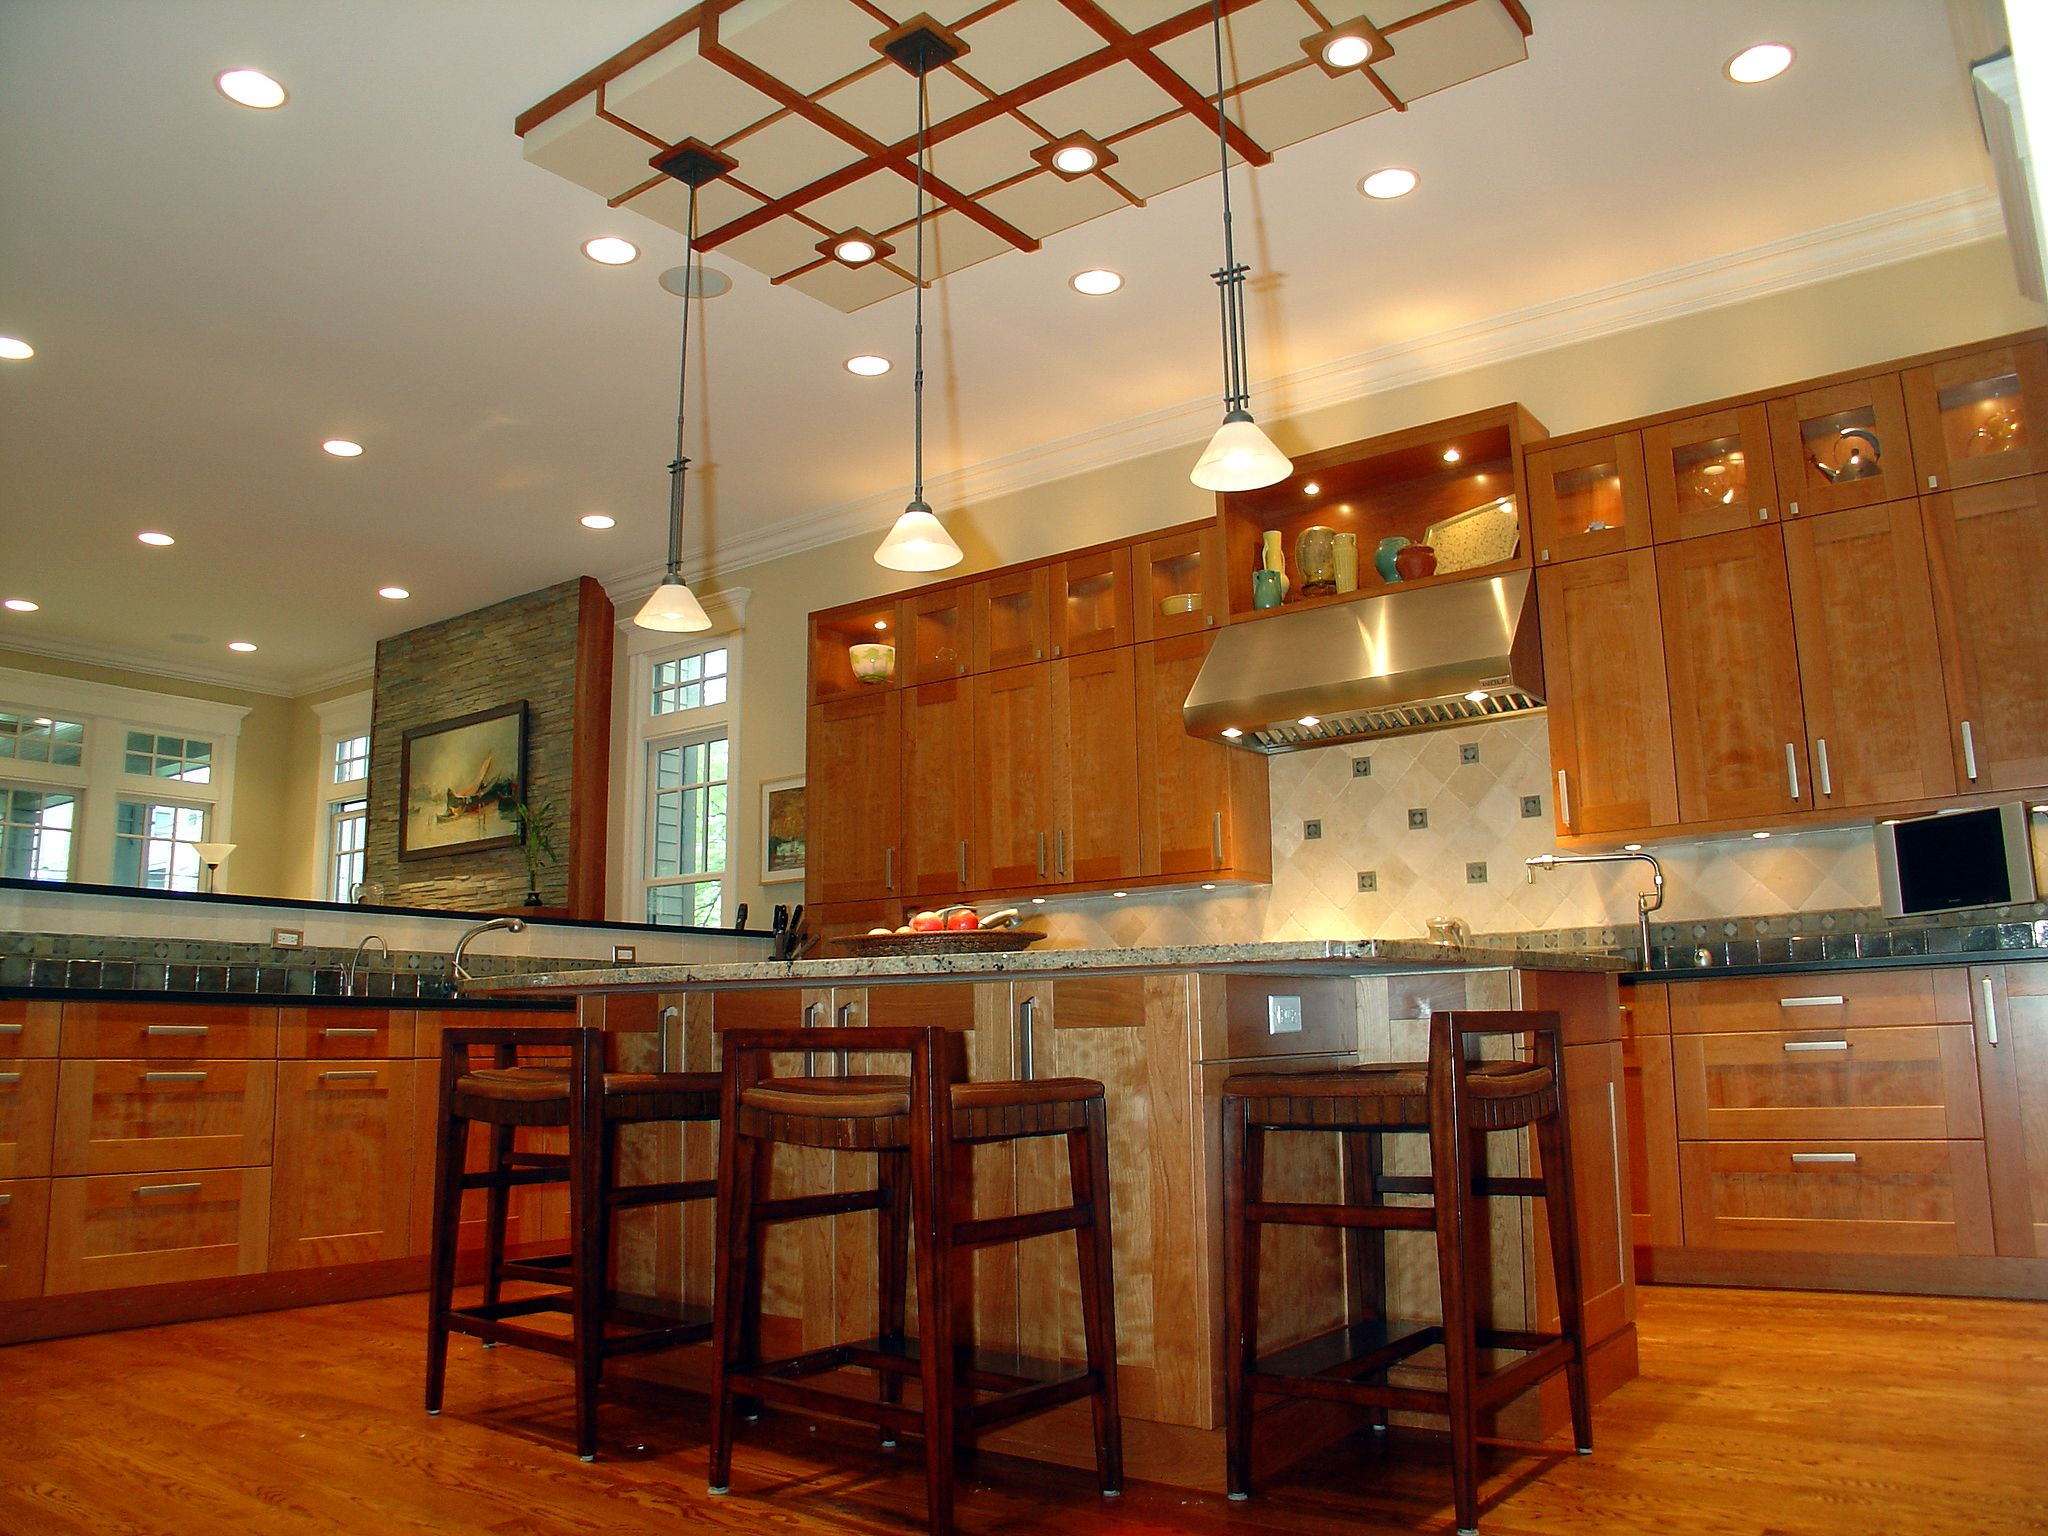 Xfinity Com Search Upper Kitchen Cabinets Upper Cabinets Kitchen Wall Cabinets